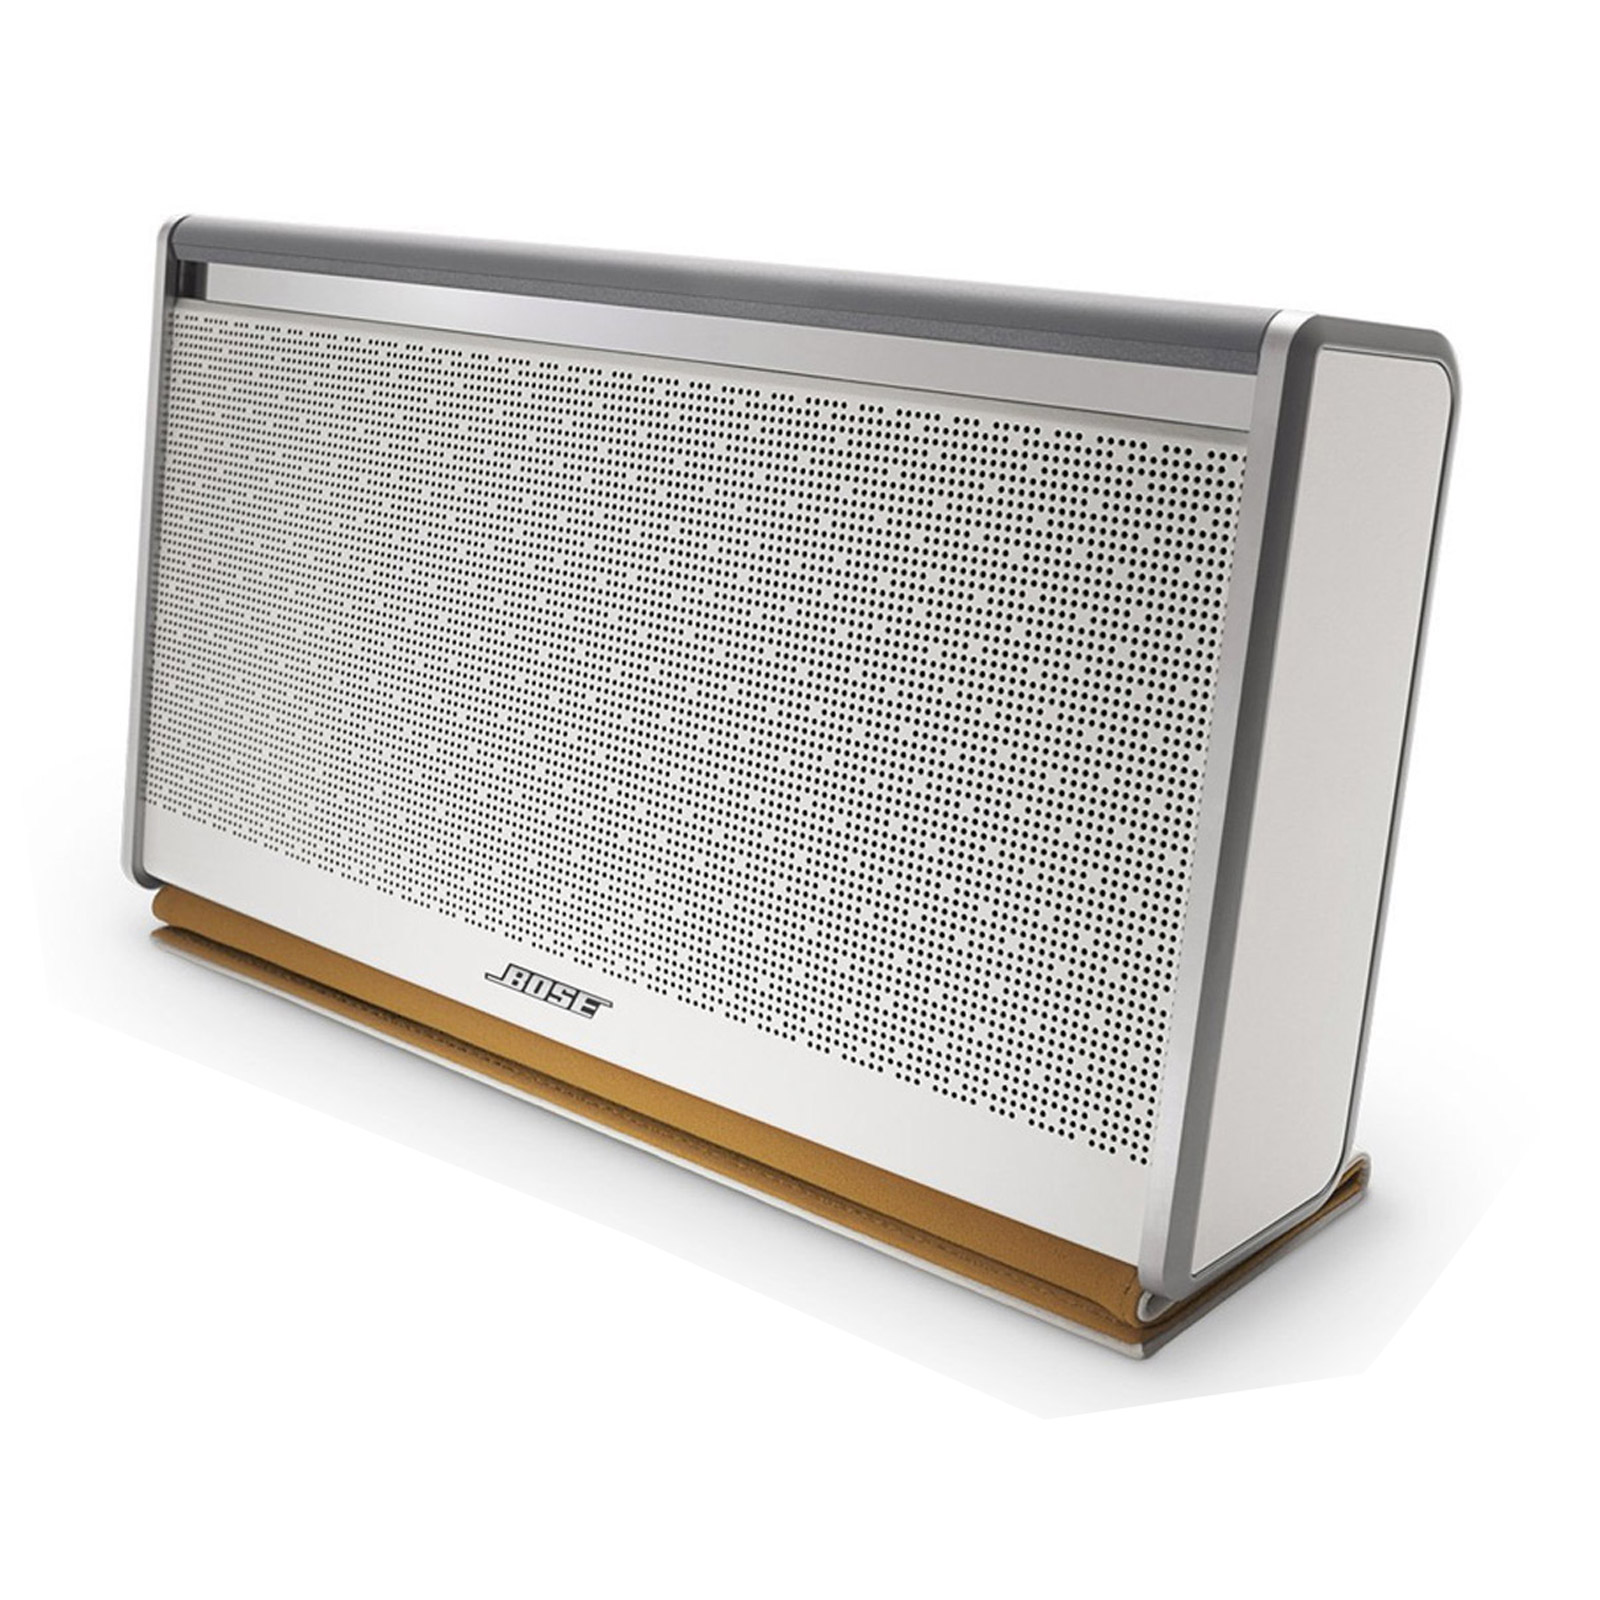 bose soundlink ii cuir blanc soundlink mobile cuir white. Black Bedroom Furniture Sets. Home Design Ideas